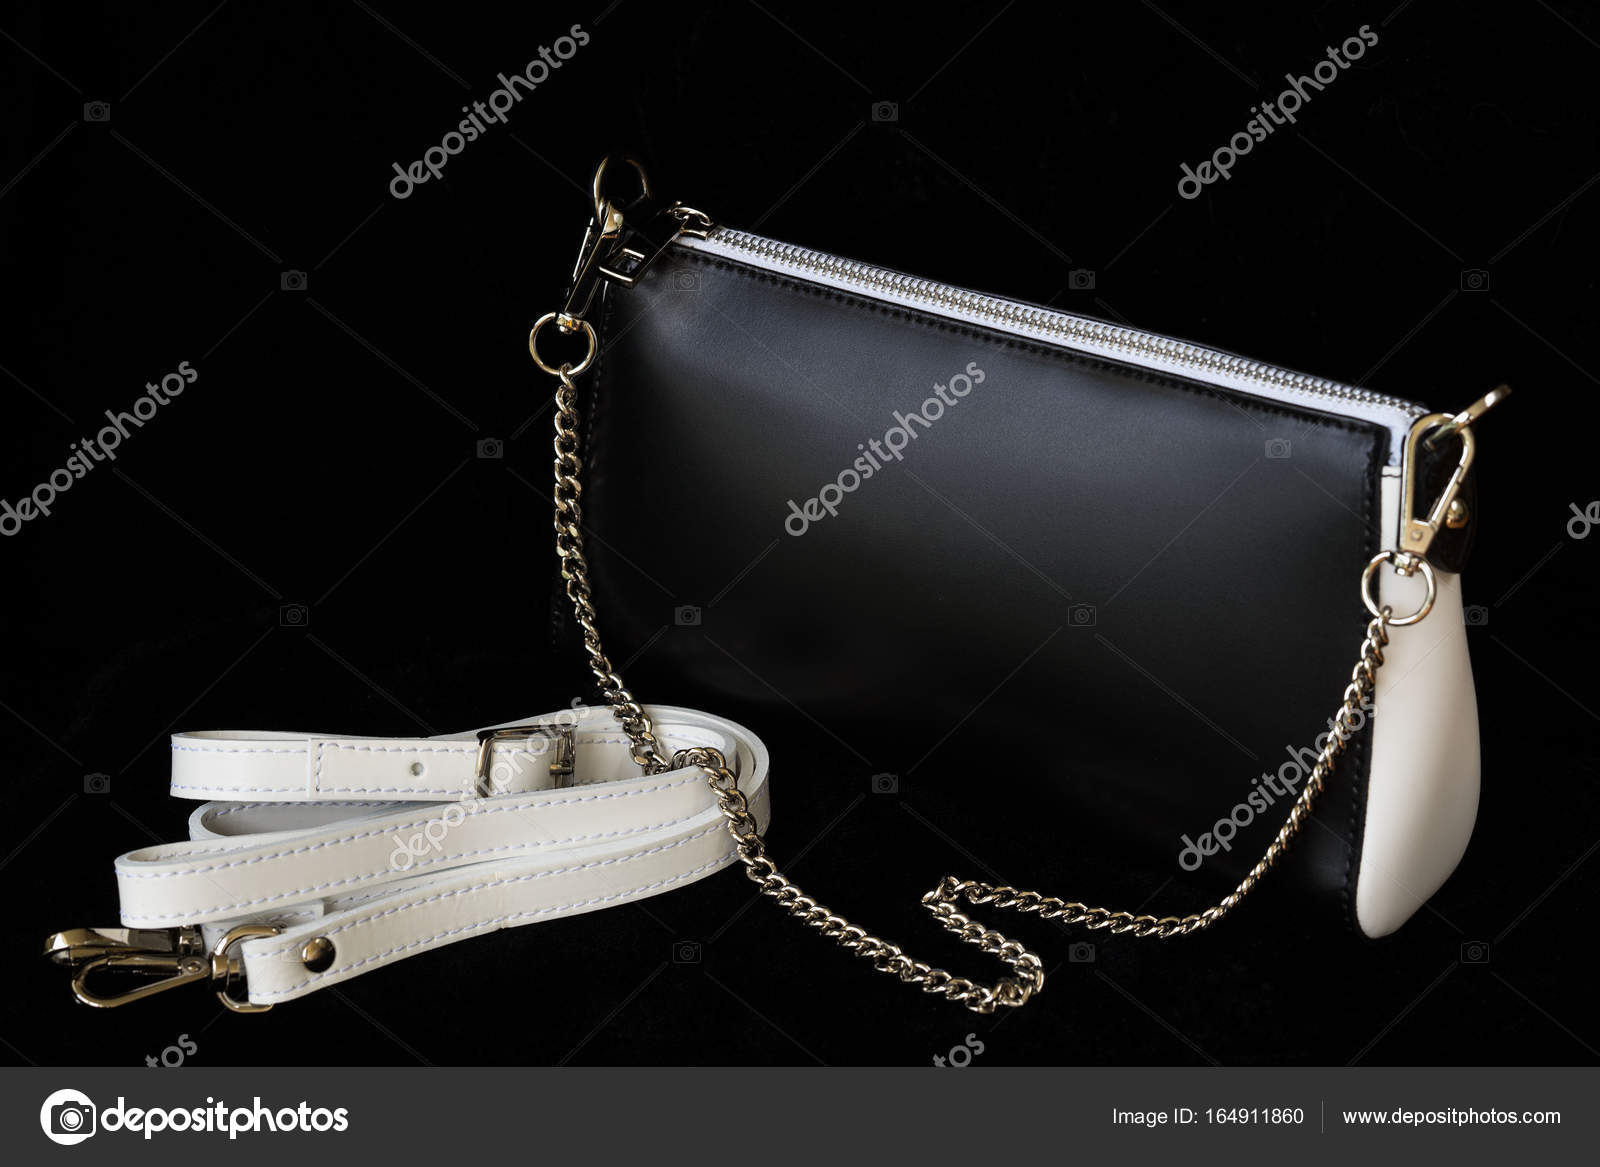 Close-up of leather handbag, always classic combination, black and white color with strap and chain, low key. For modern pattern, wallpaper or banner design ...